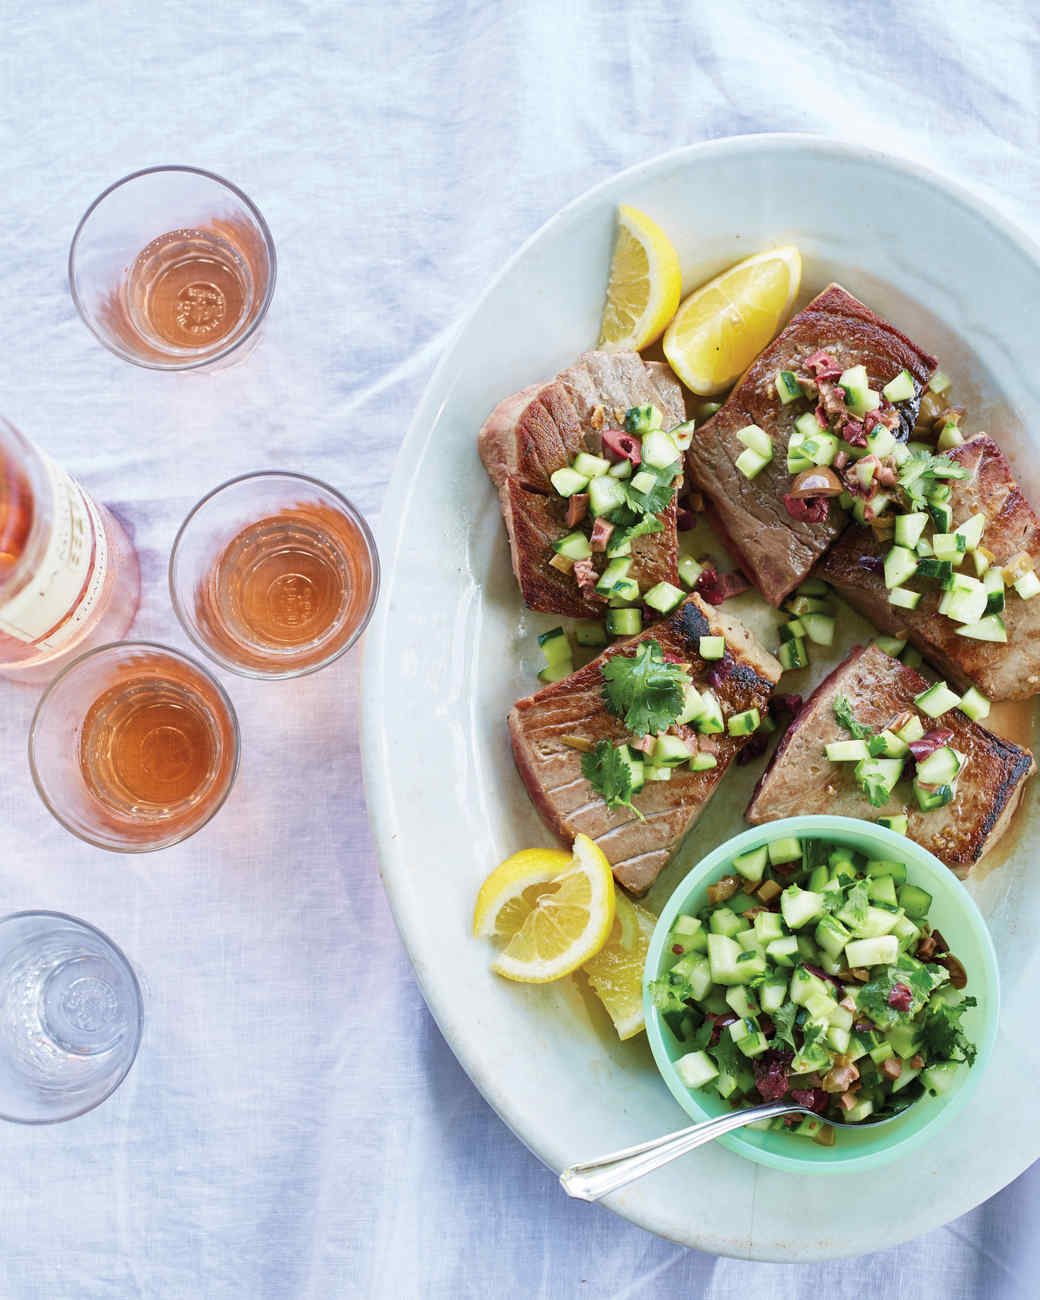 Elegant Bluefin Tuna With Olive, Cucumber, And Cilantro Relish